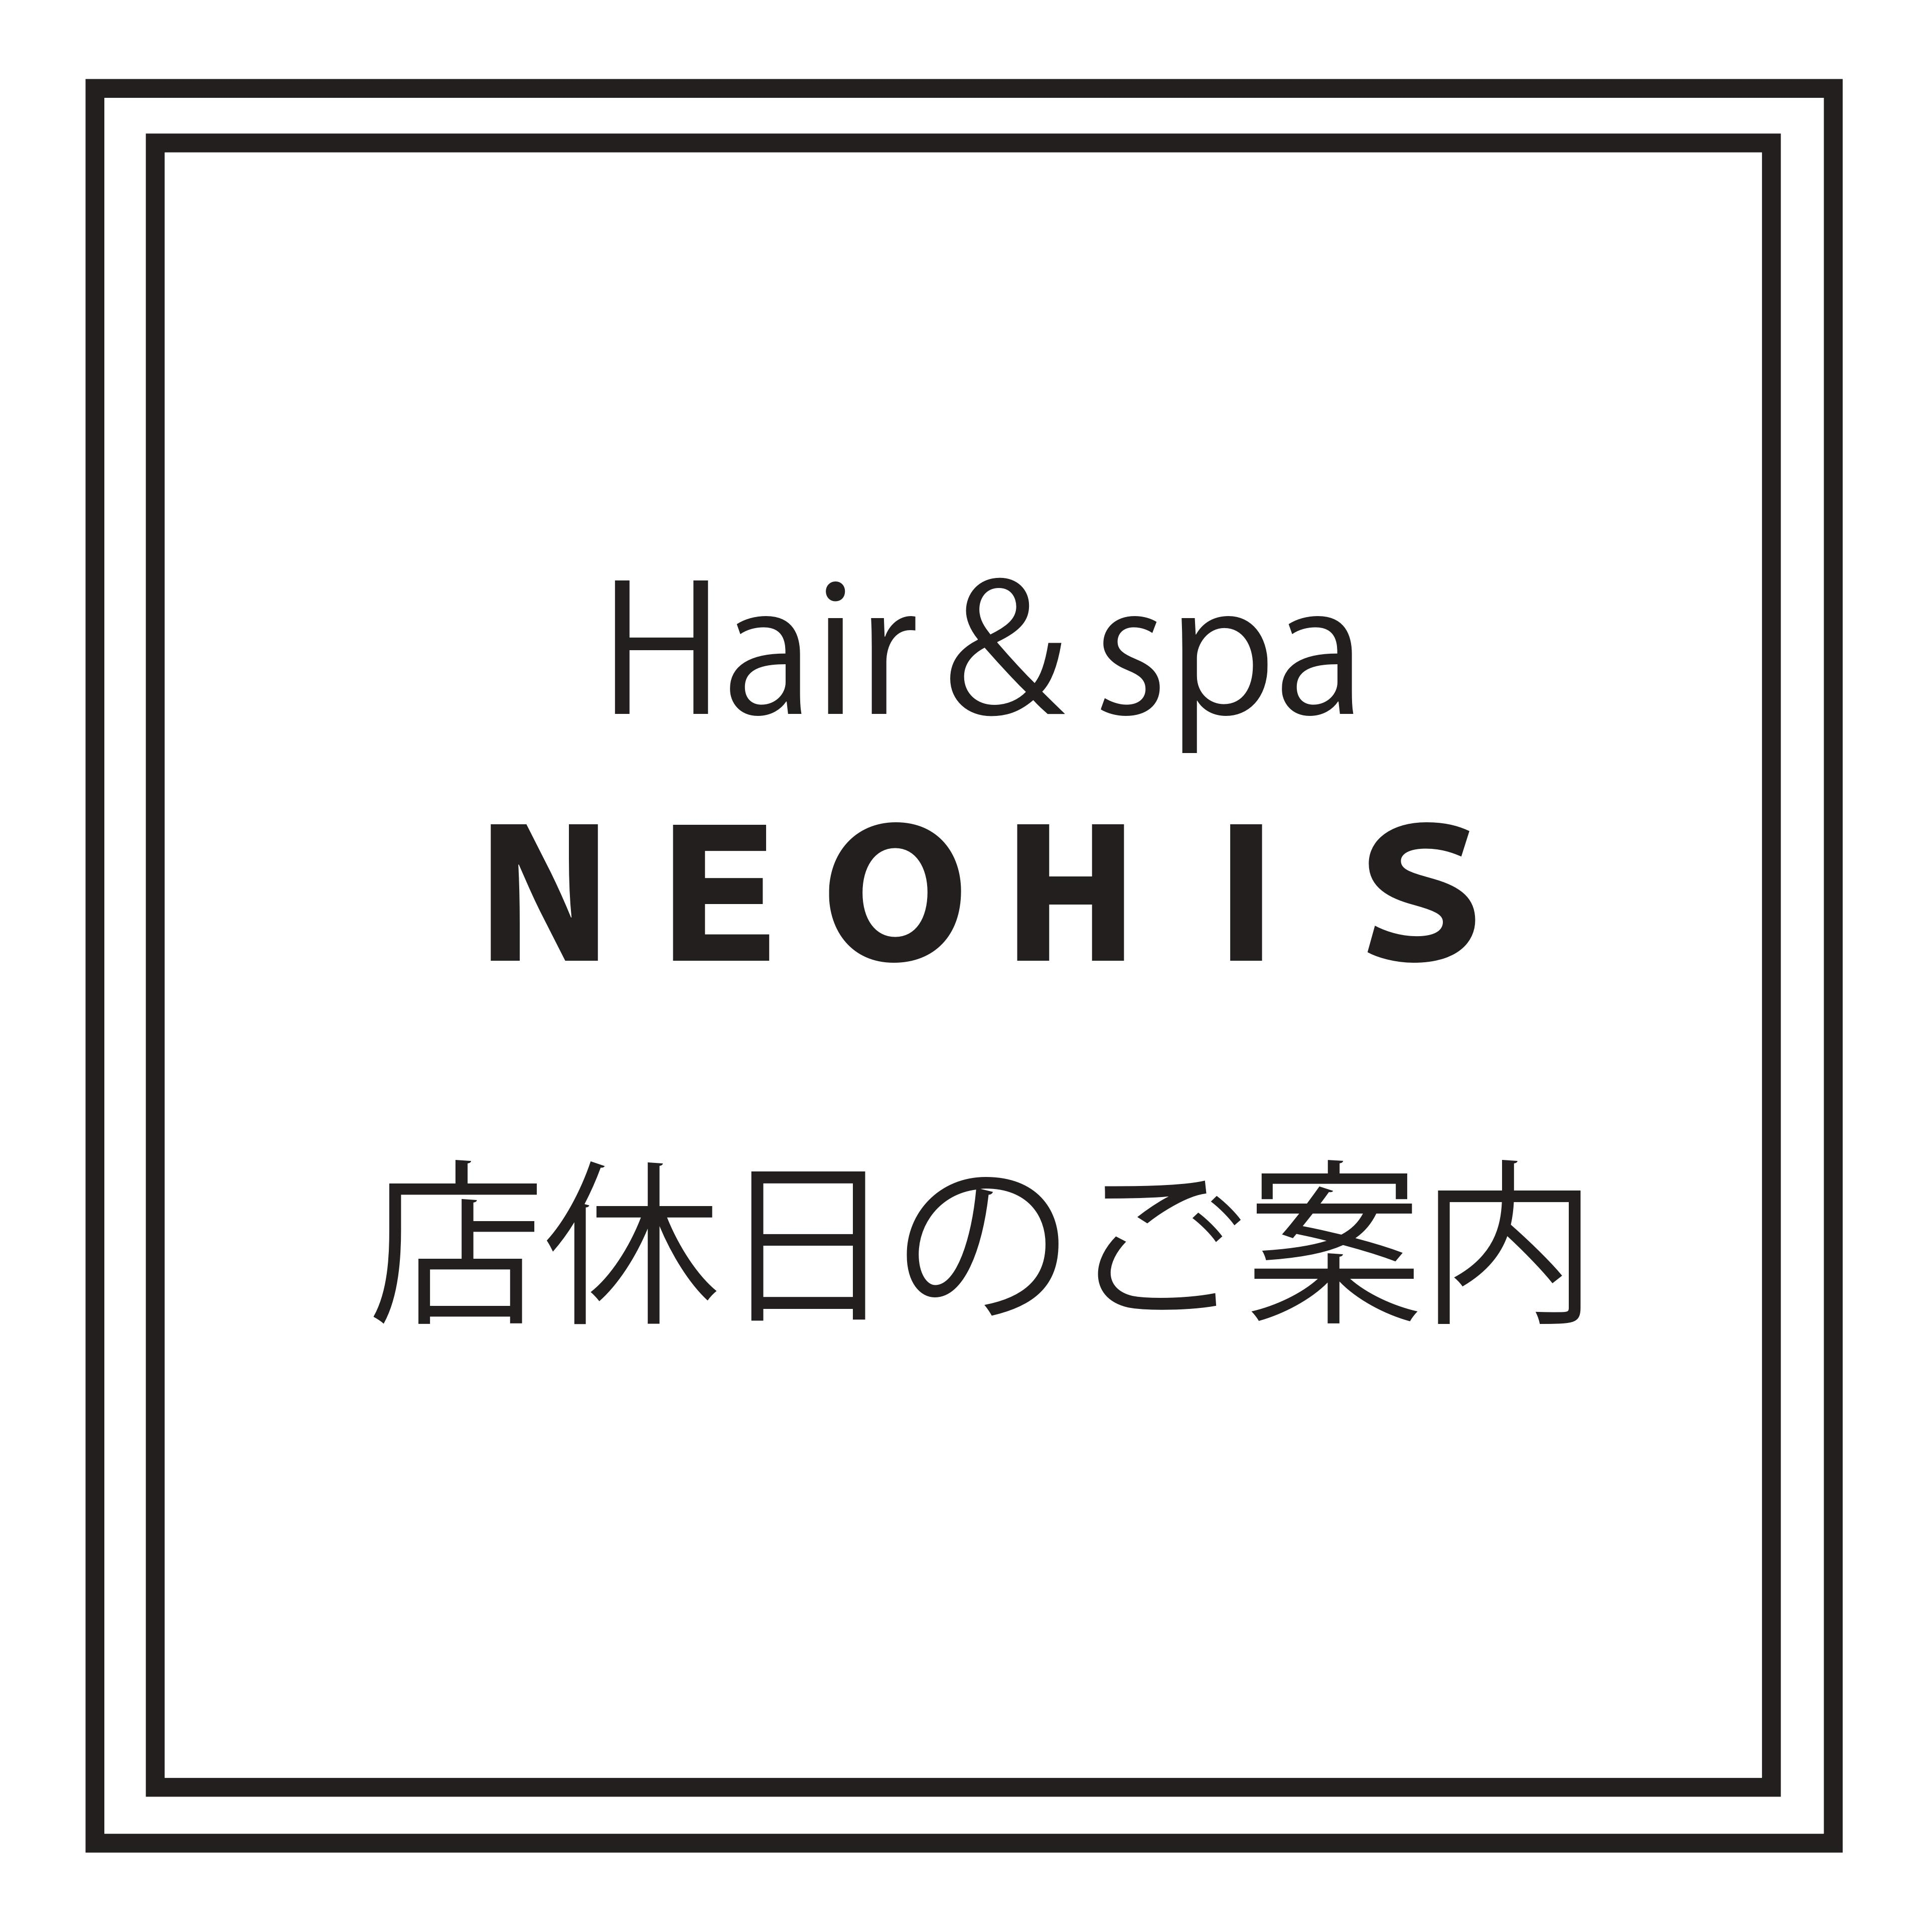 Hair&spa NEOHIS 3月&4月店休日のご案内